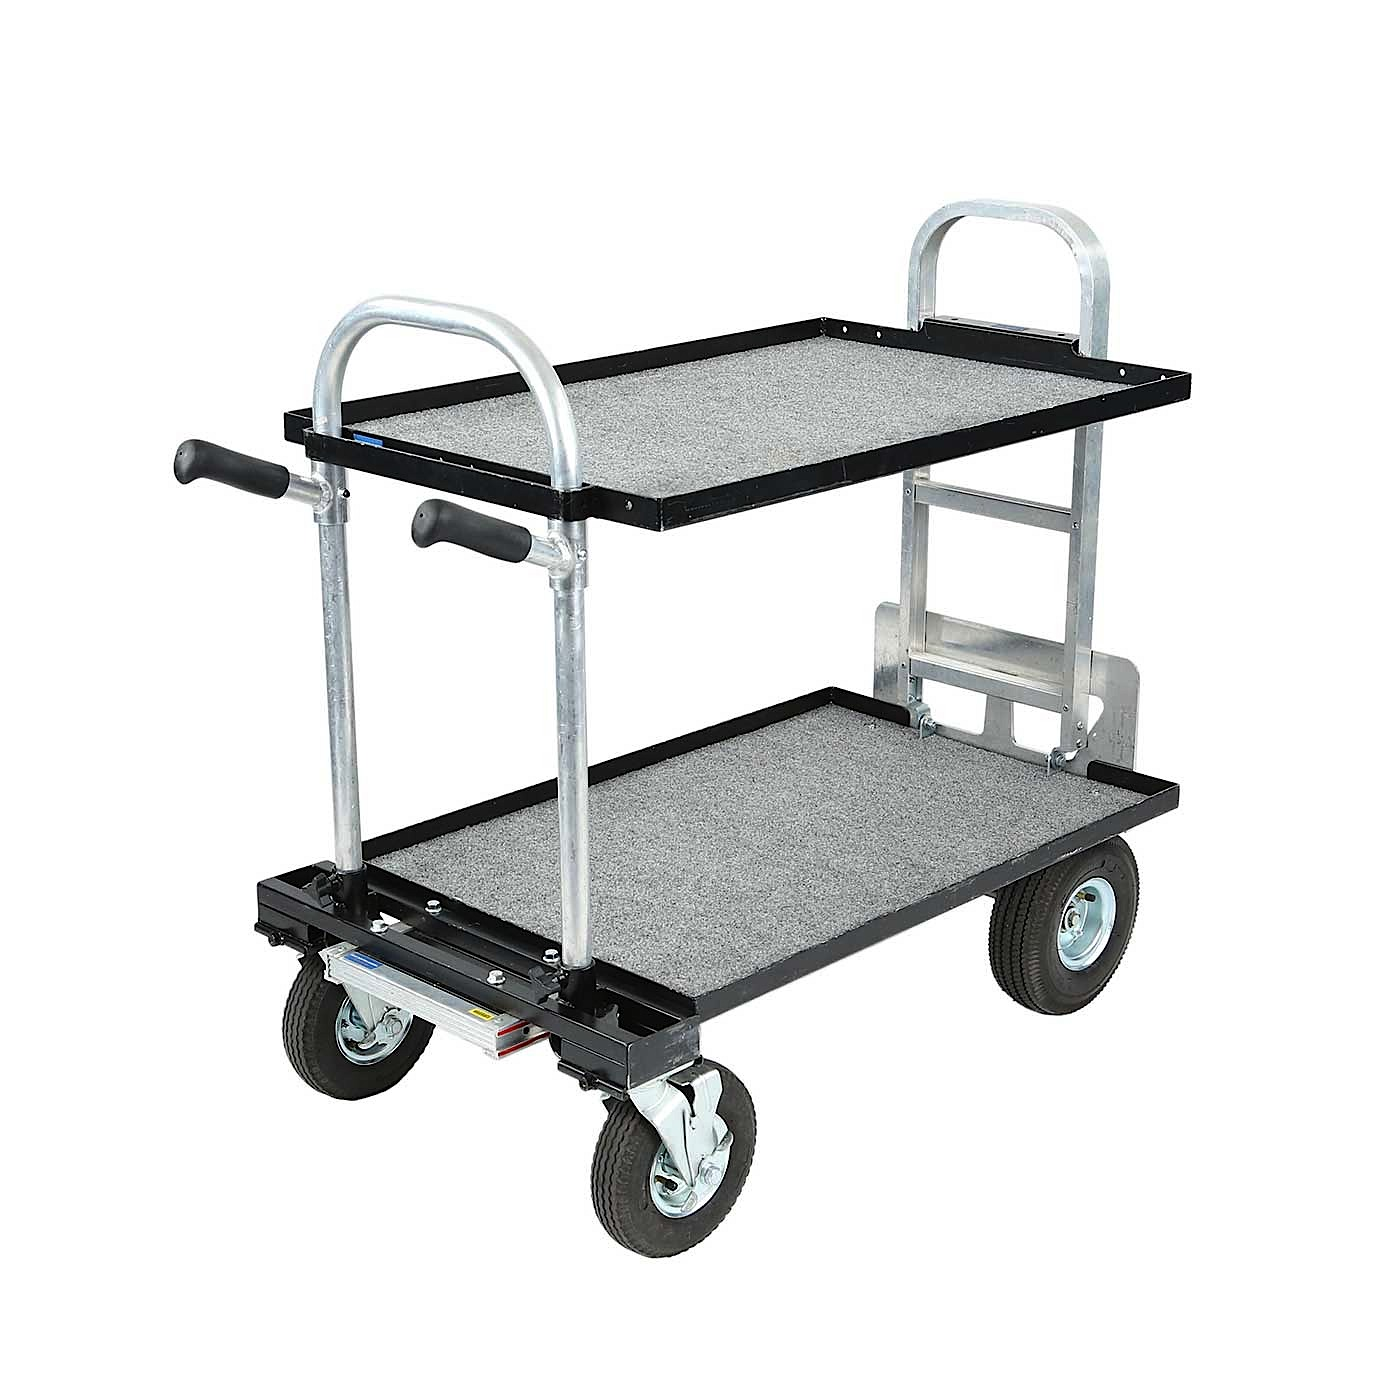 Magliner Gemini 24x36 Junior Cart with Wide Shelf